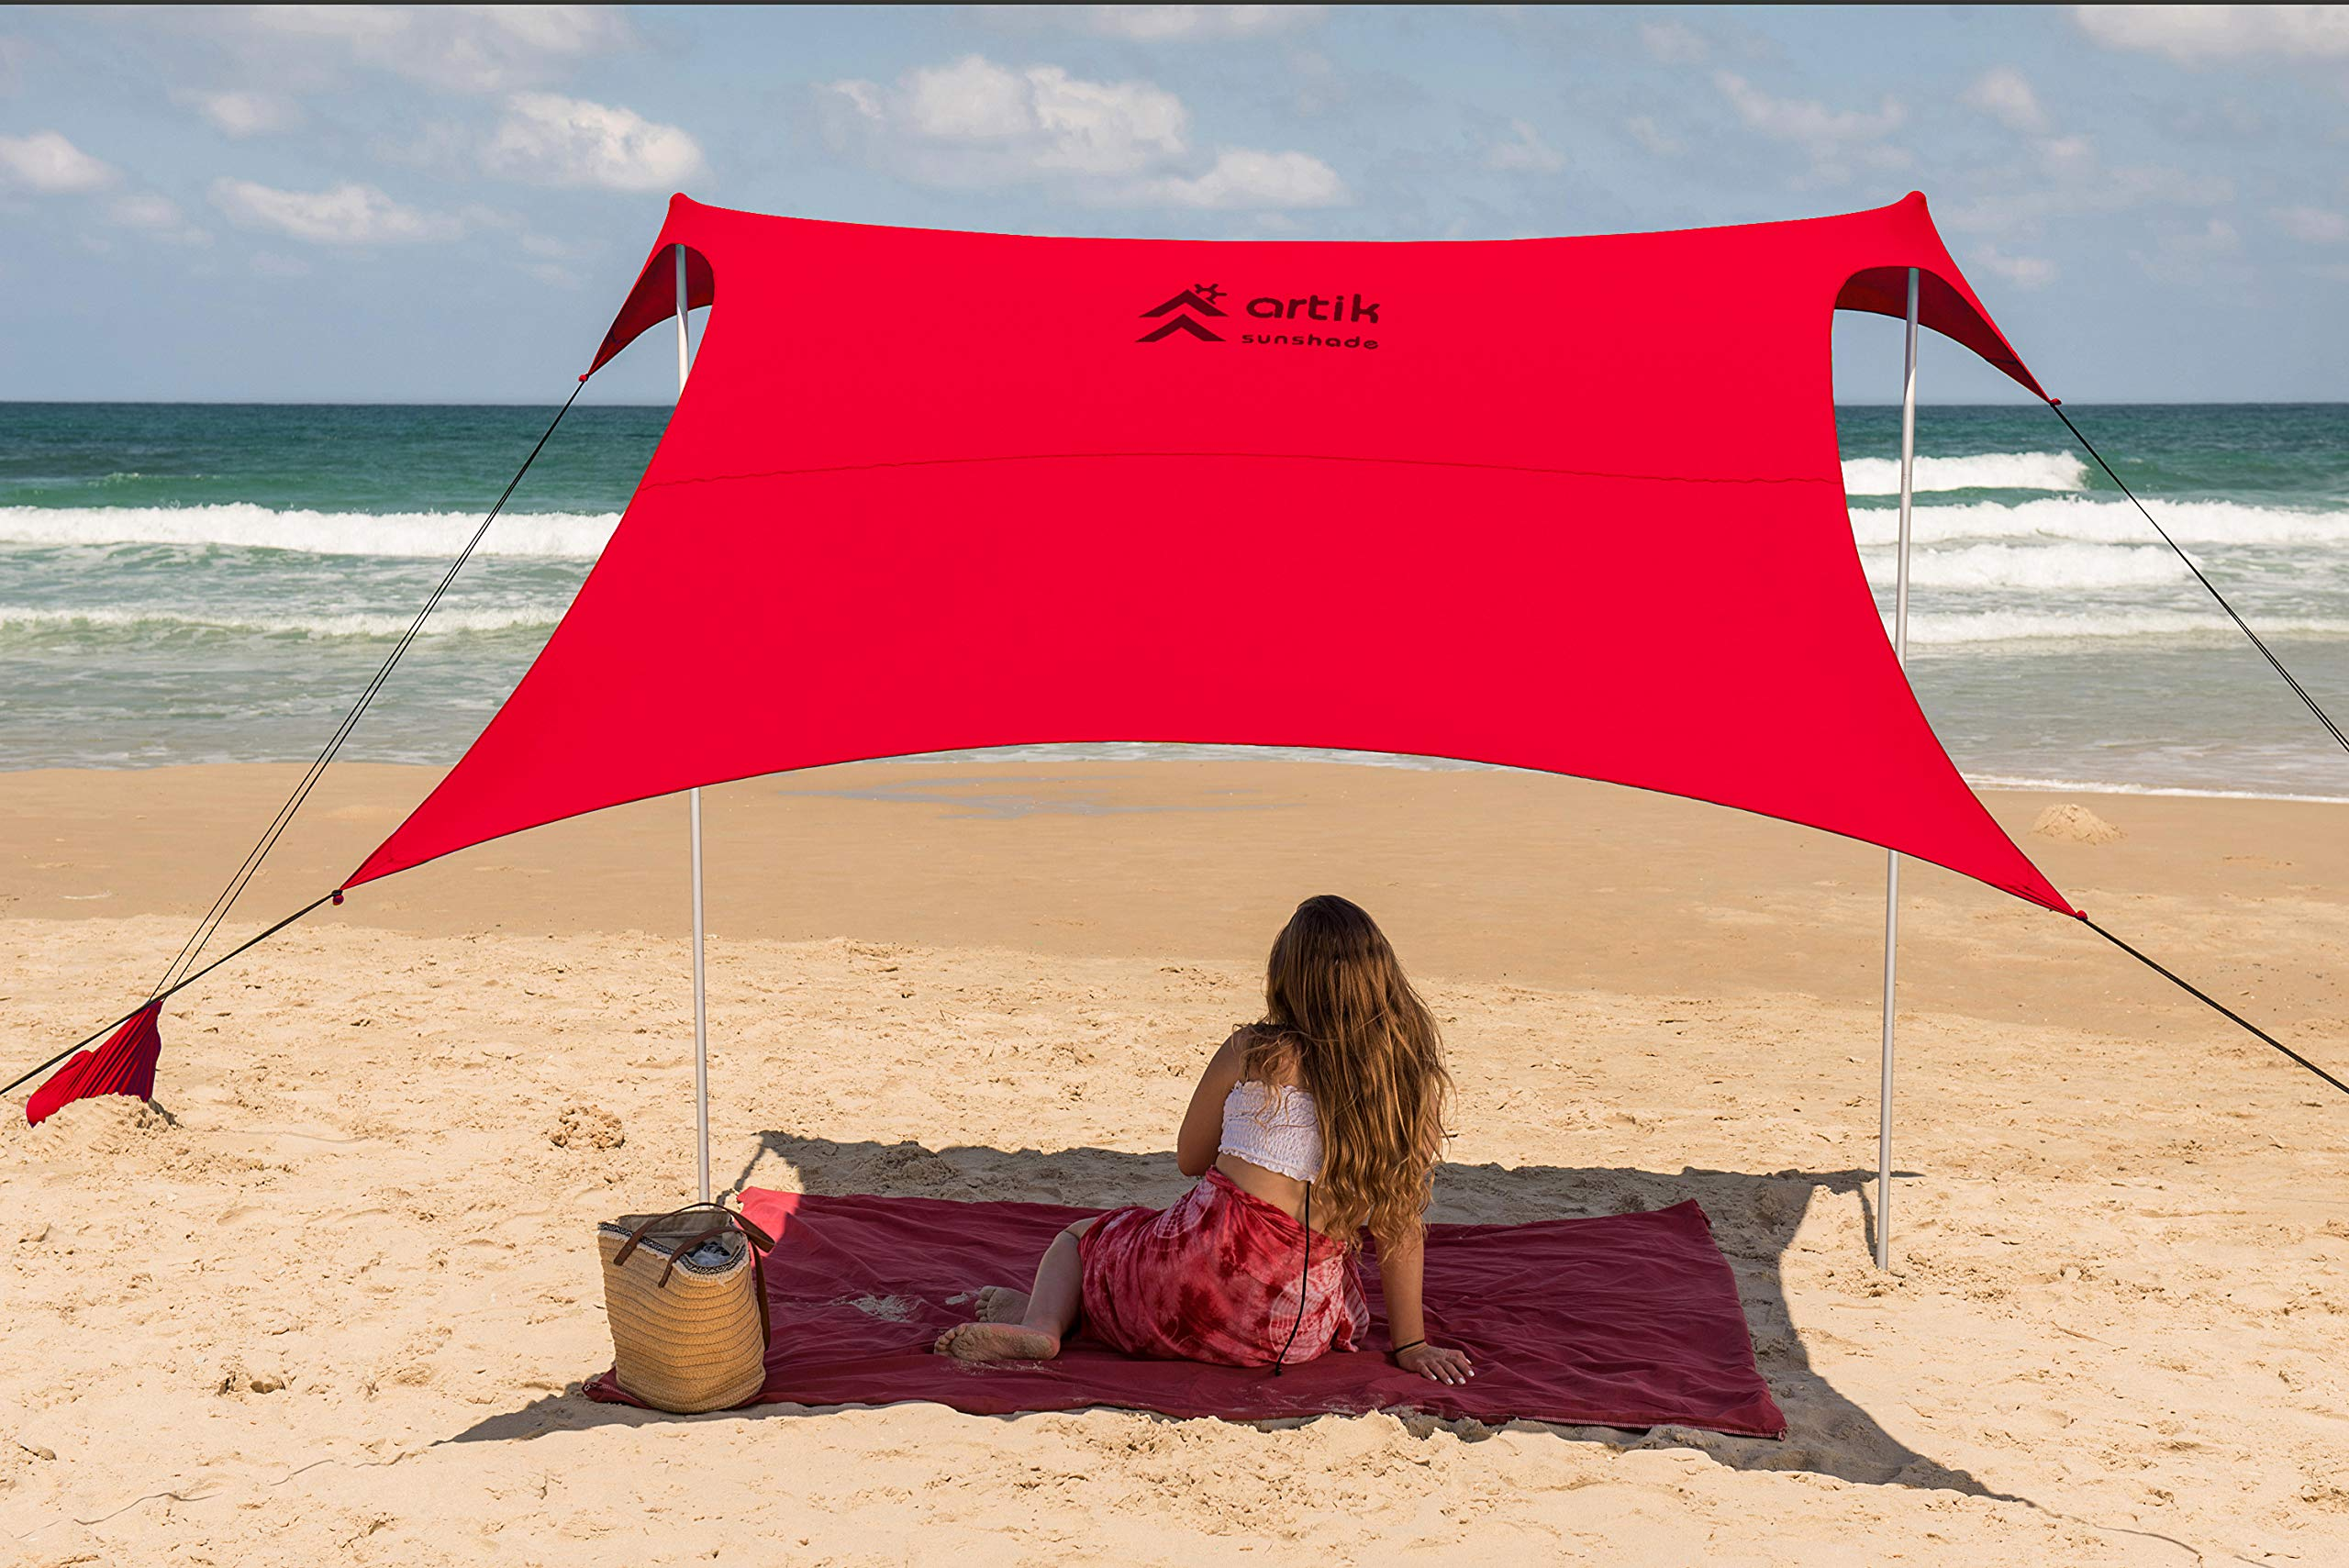 Beach Tent Sunshade Family Size 9.8'X9.8', 7ft Tall with Sandbag Anchors, Simple & Versatile. SPF50, Lycra SunShelter for The Beach,Camping and Outdoors. (red, Large) by ARTIK SUNSHADE